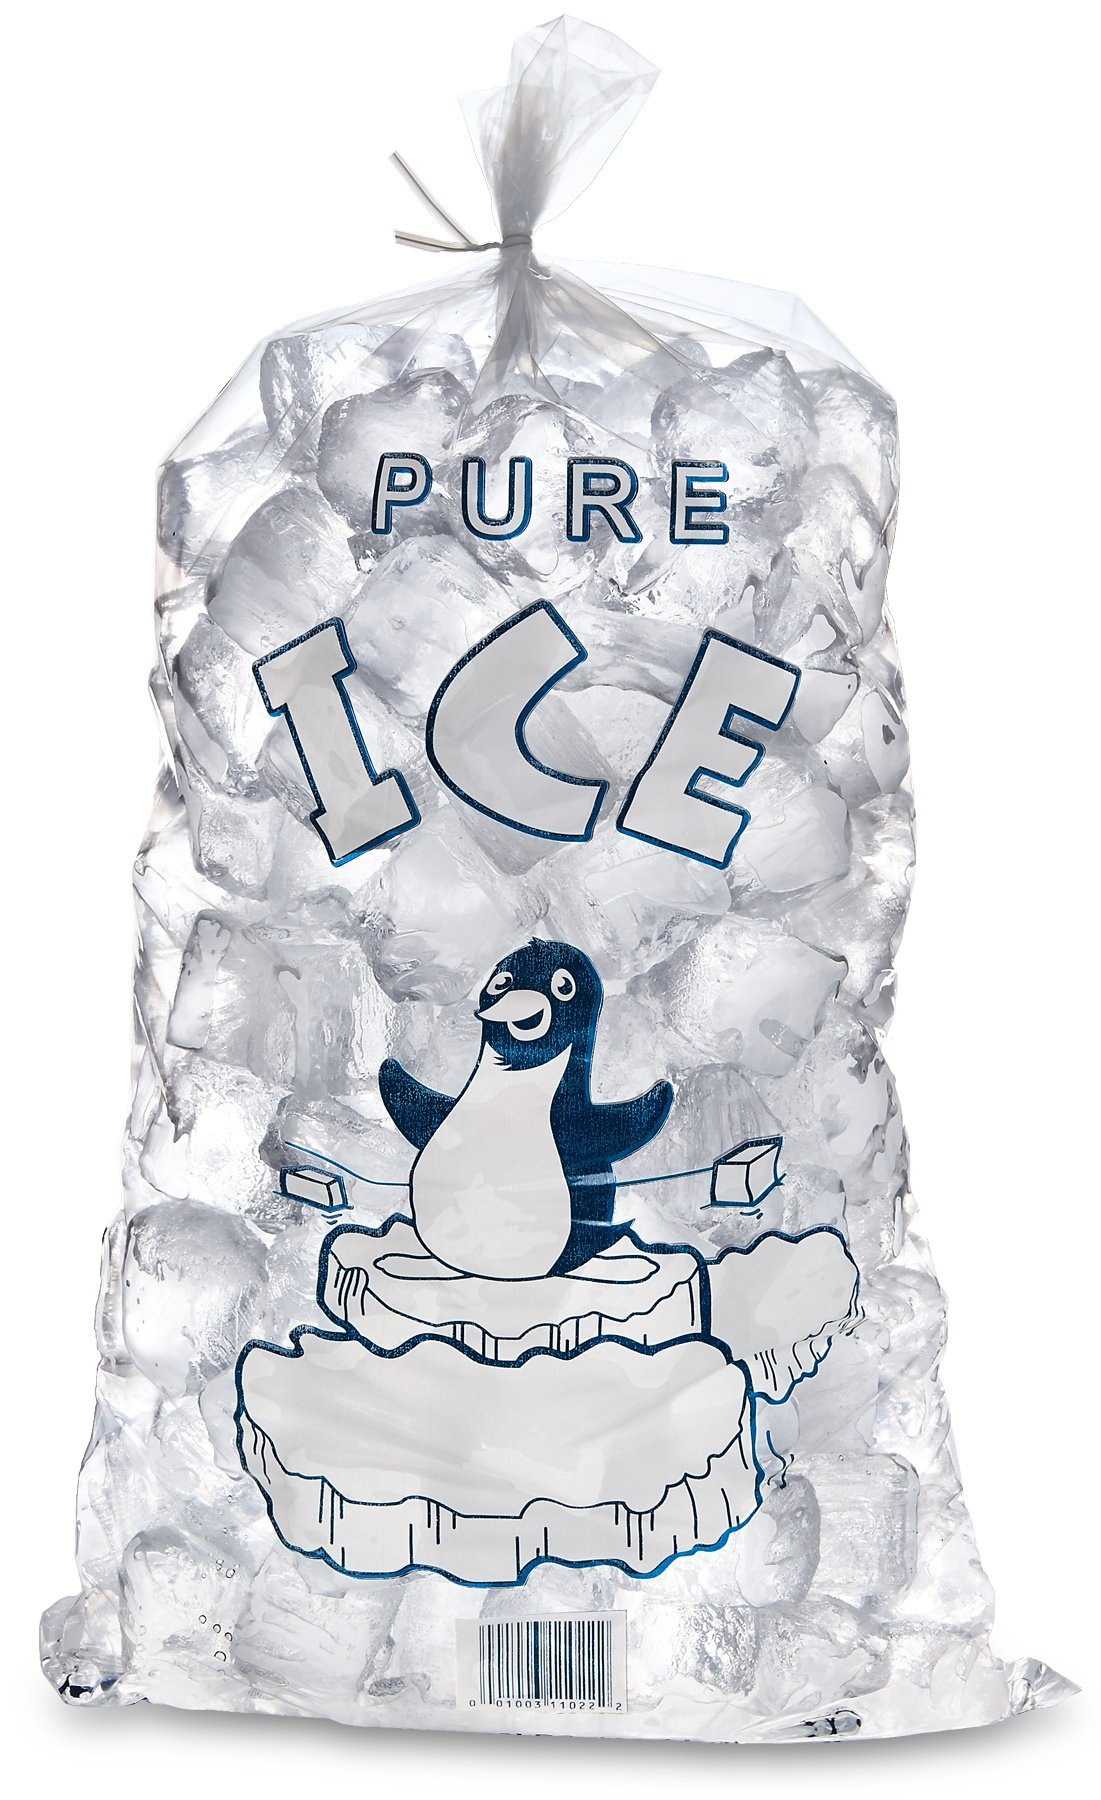 Plastic 10 Lb. Ice Bags - 12'' X 22'' 1.6 Mil Thick Bags, 100 Bags with Twist Ties